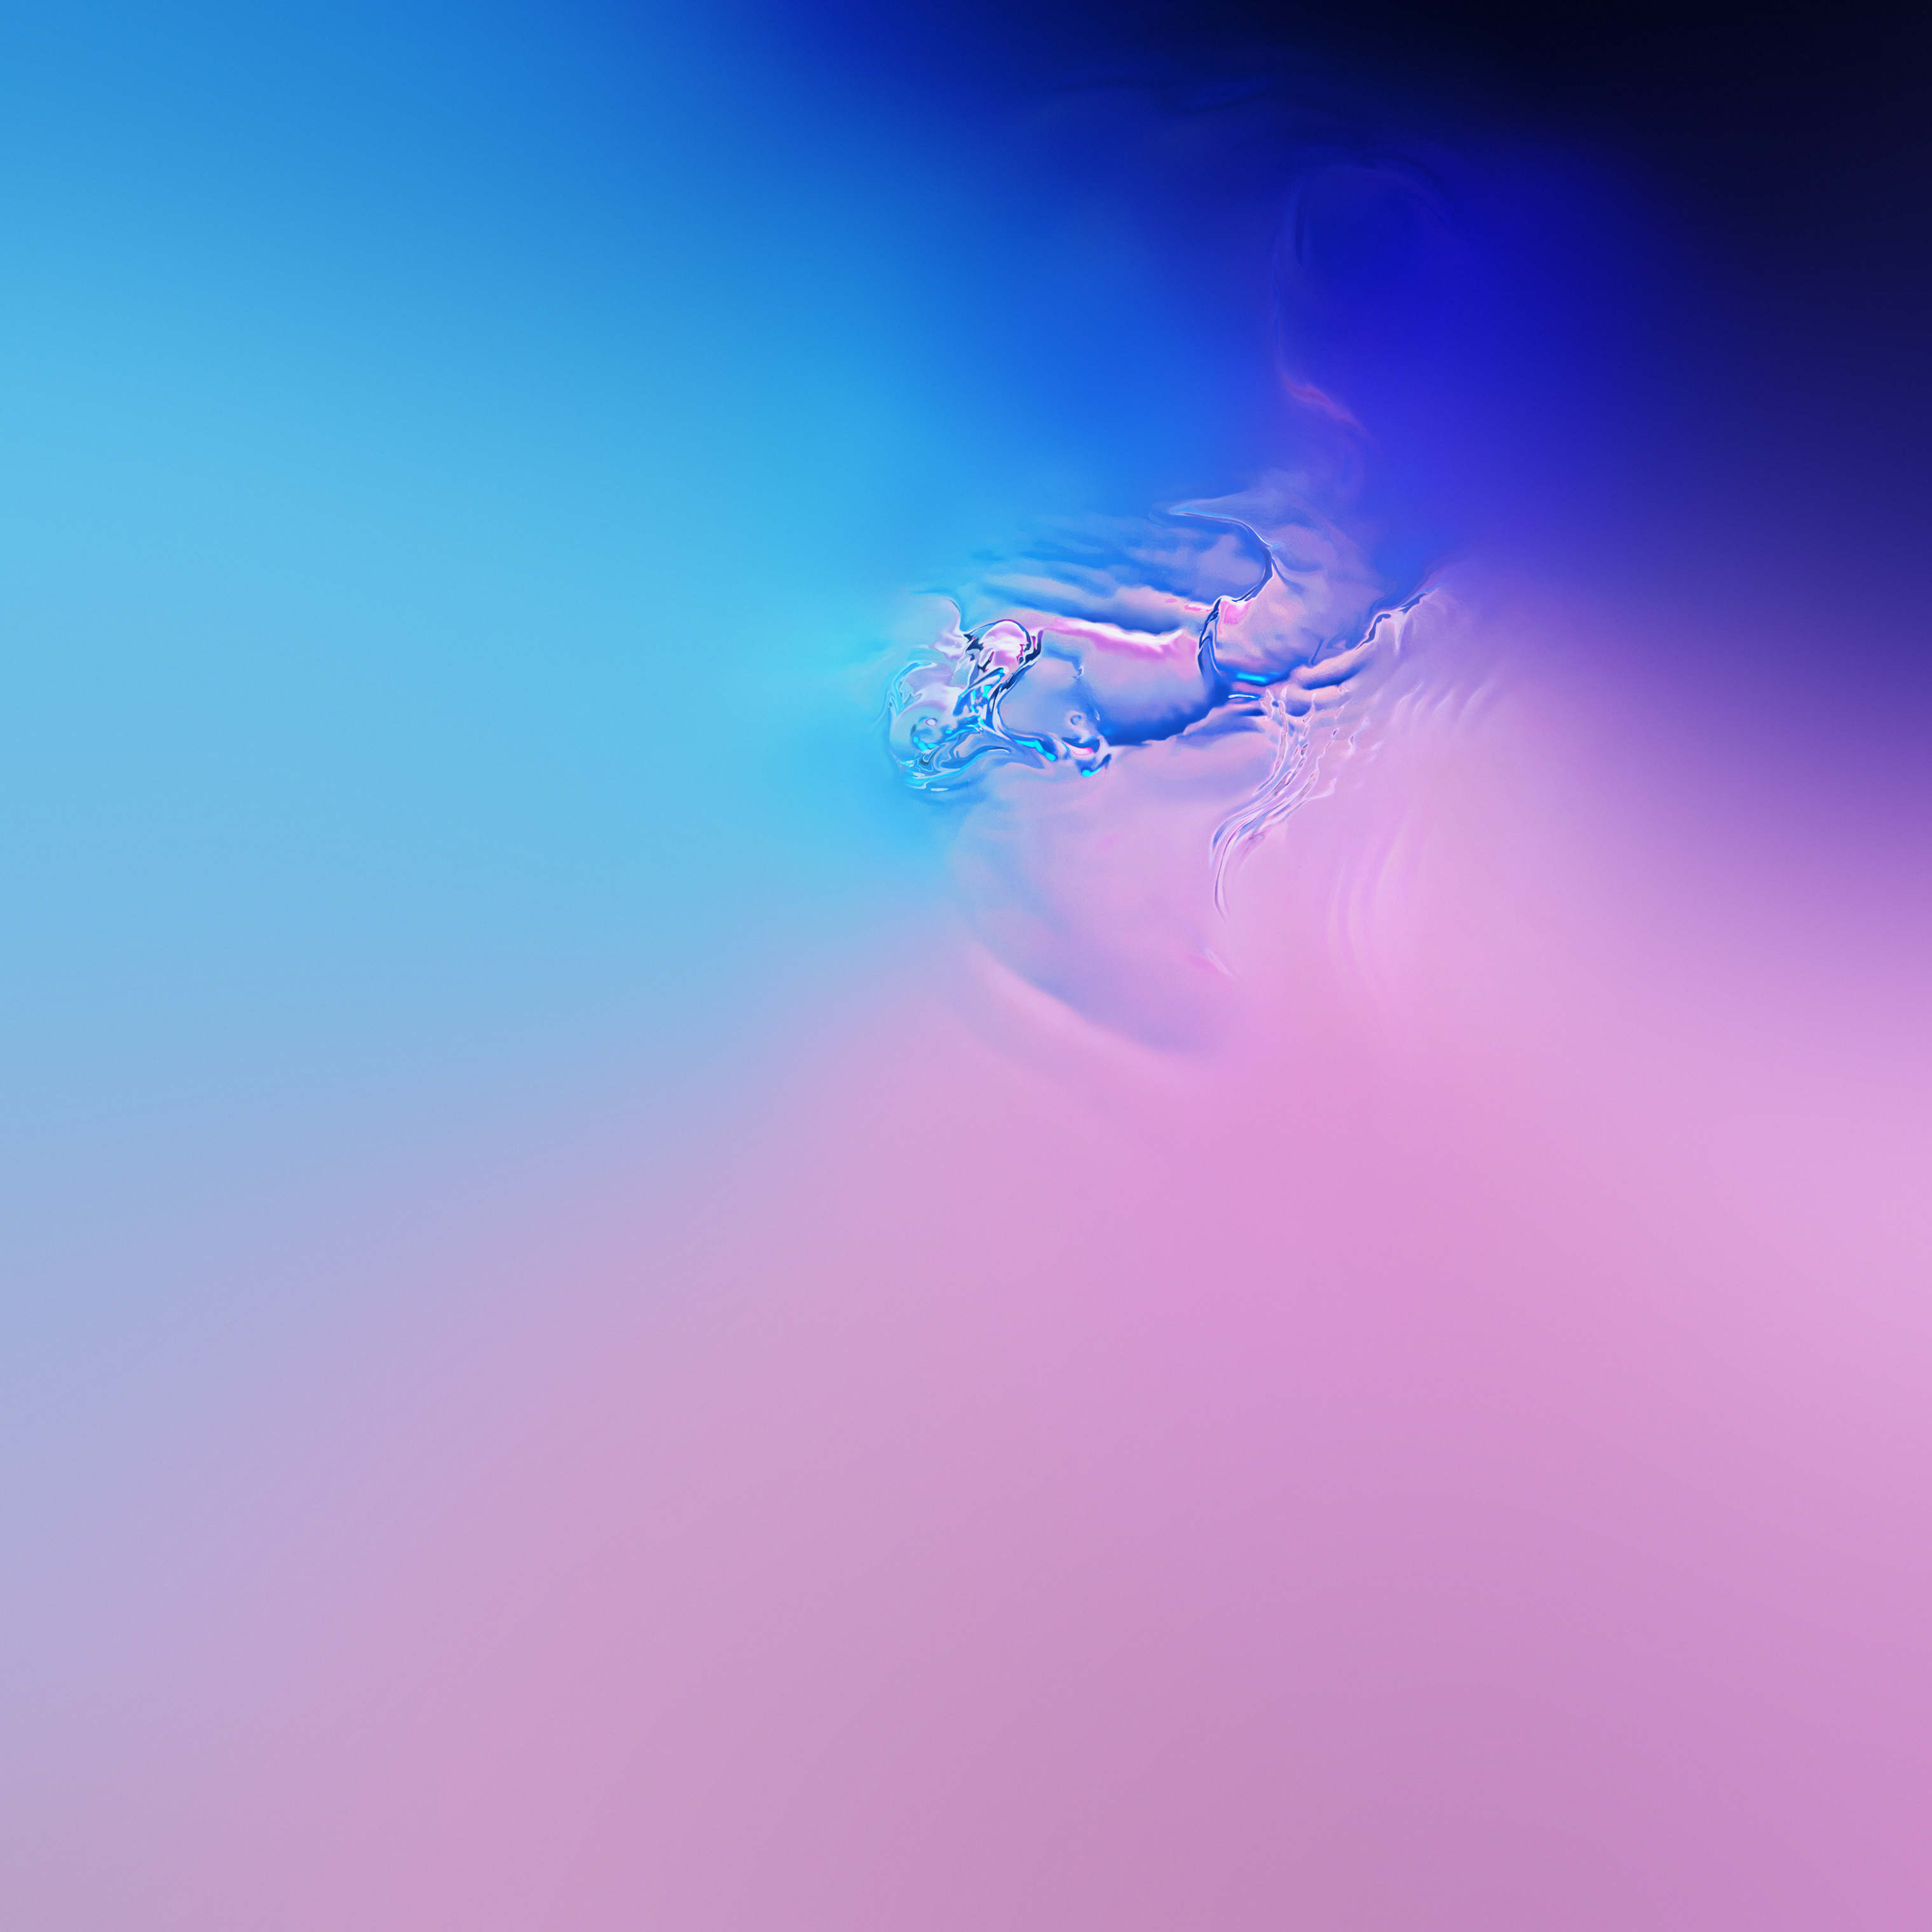 Samsung S Official Galaxy S10 Wallpapers All Try Really Hard To Hide The Display Cutout